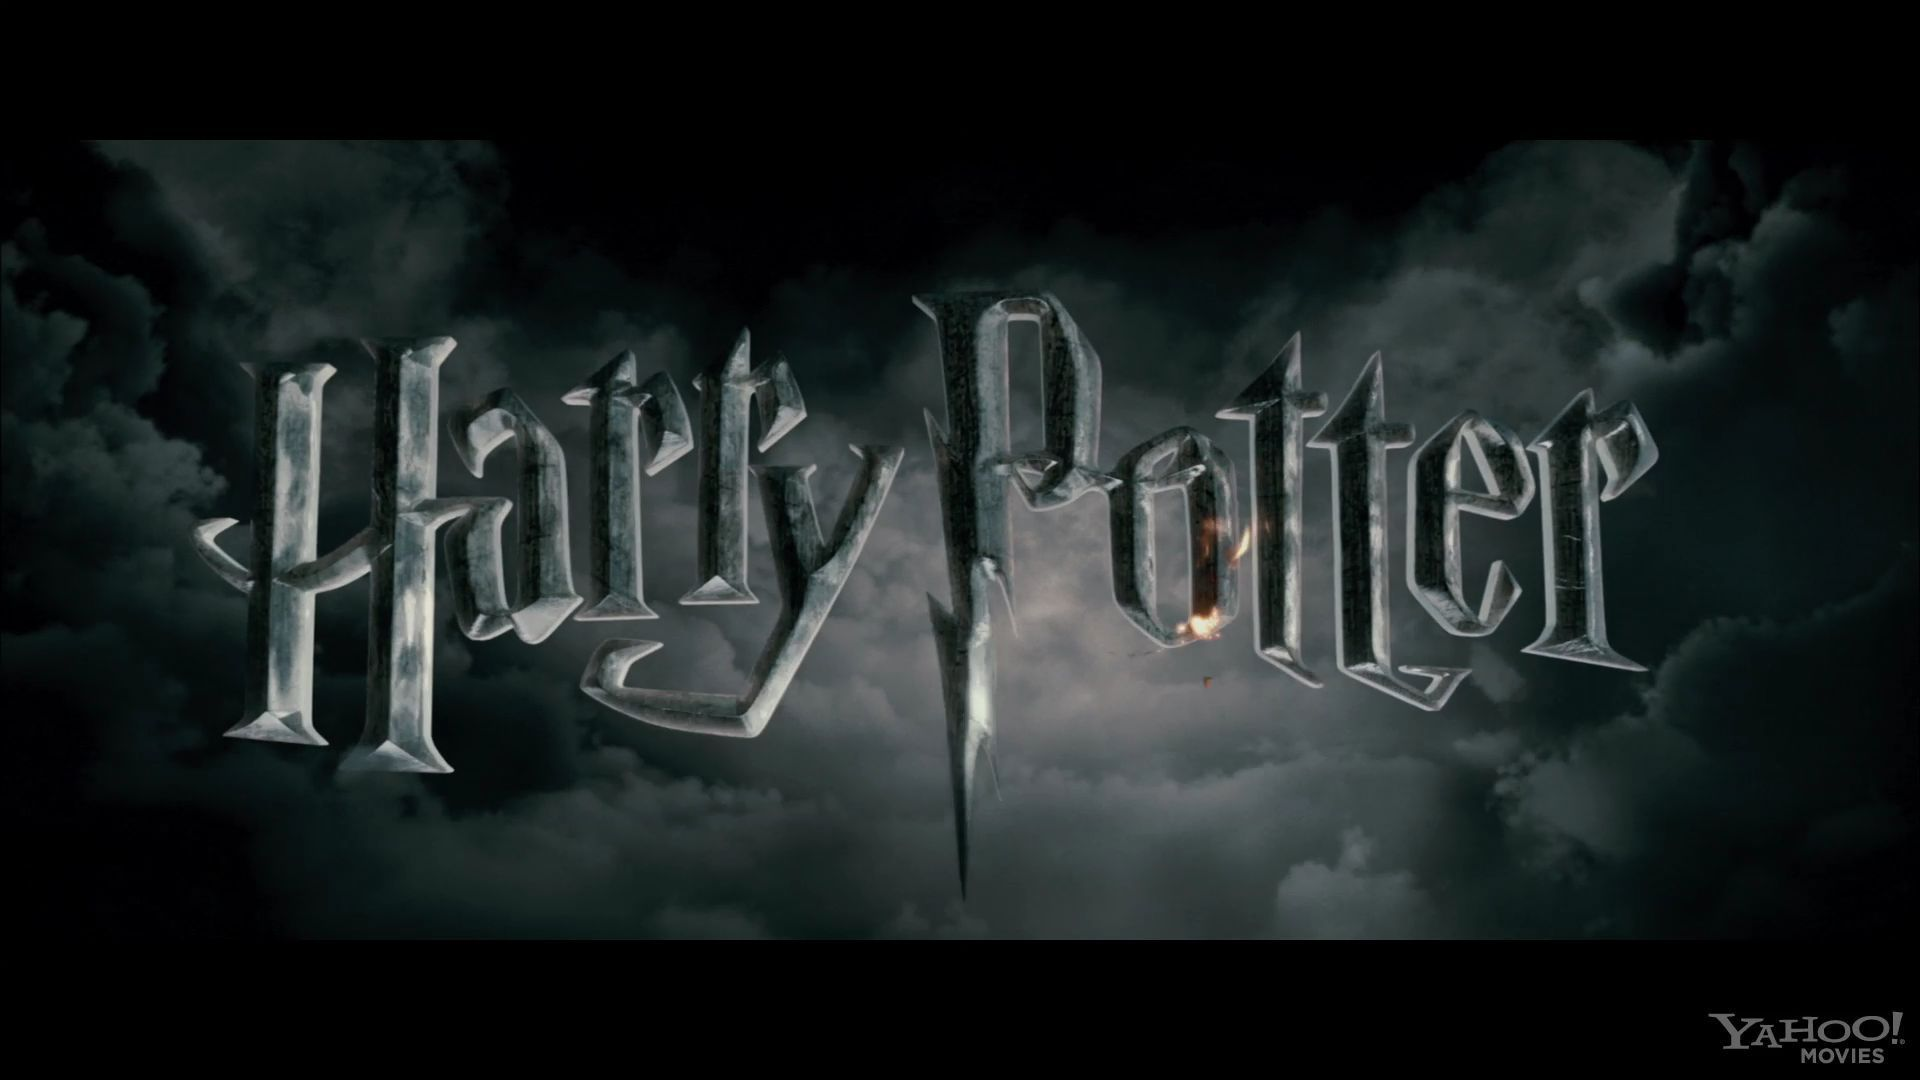 Harry Potter Wallpaper Hd For Laptop